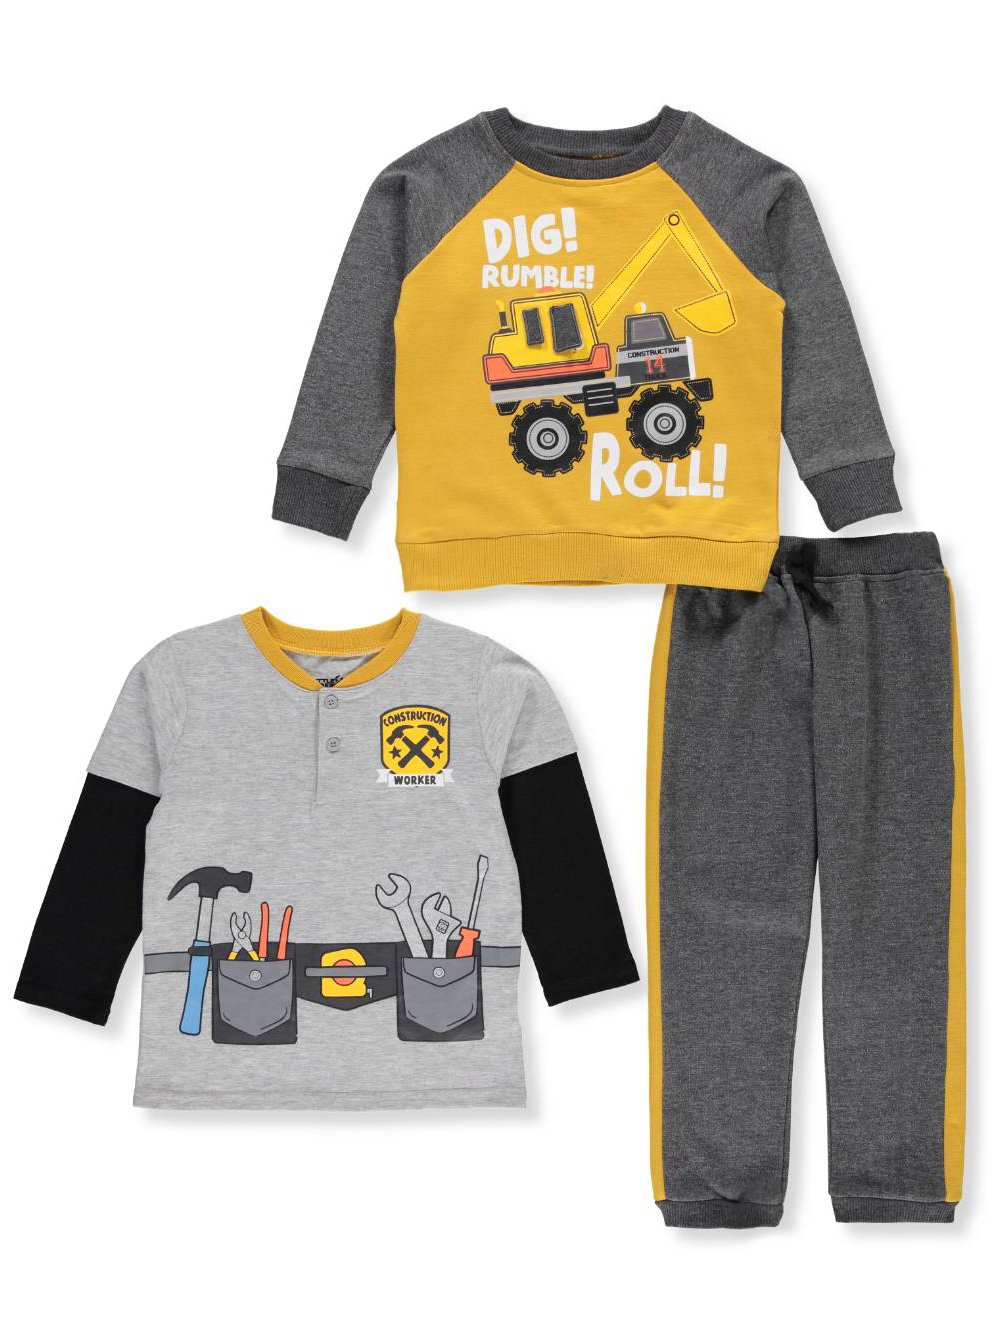 Little Rebels Boys' 3-Piece Pants Set Outfit